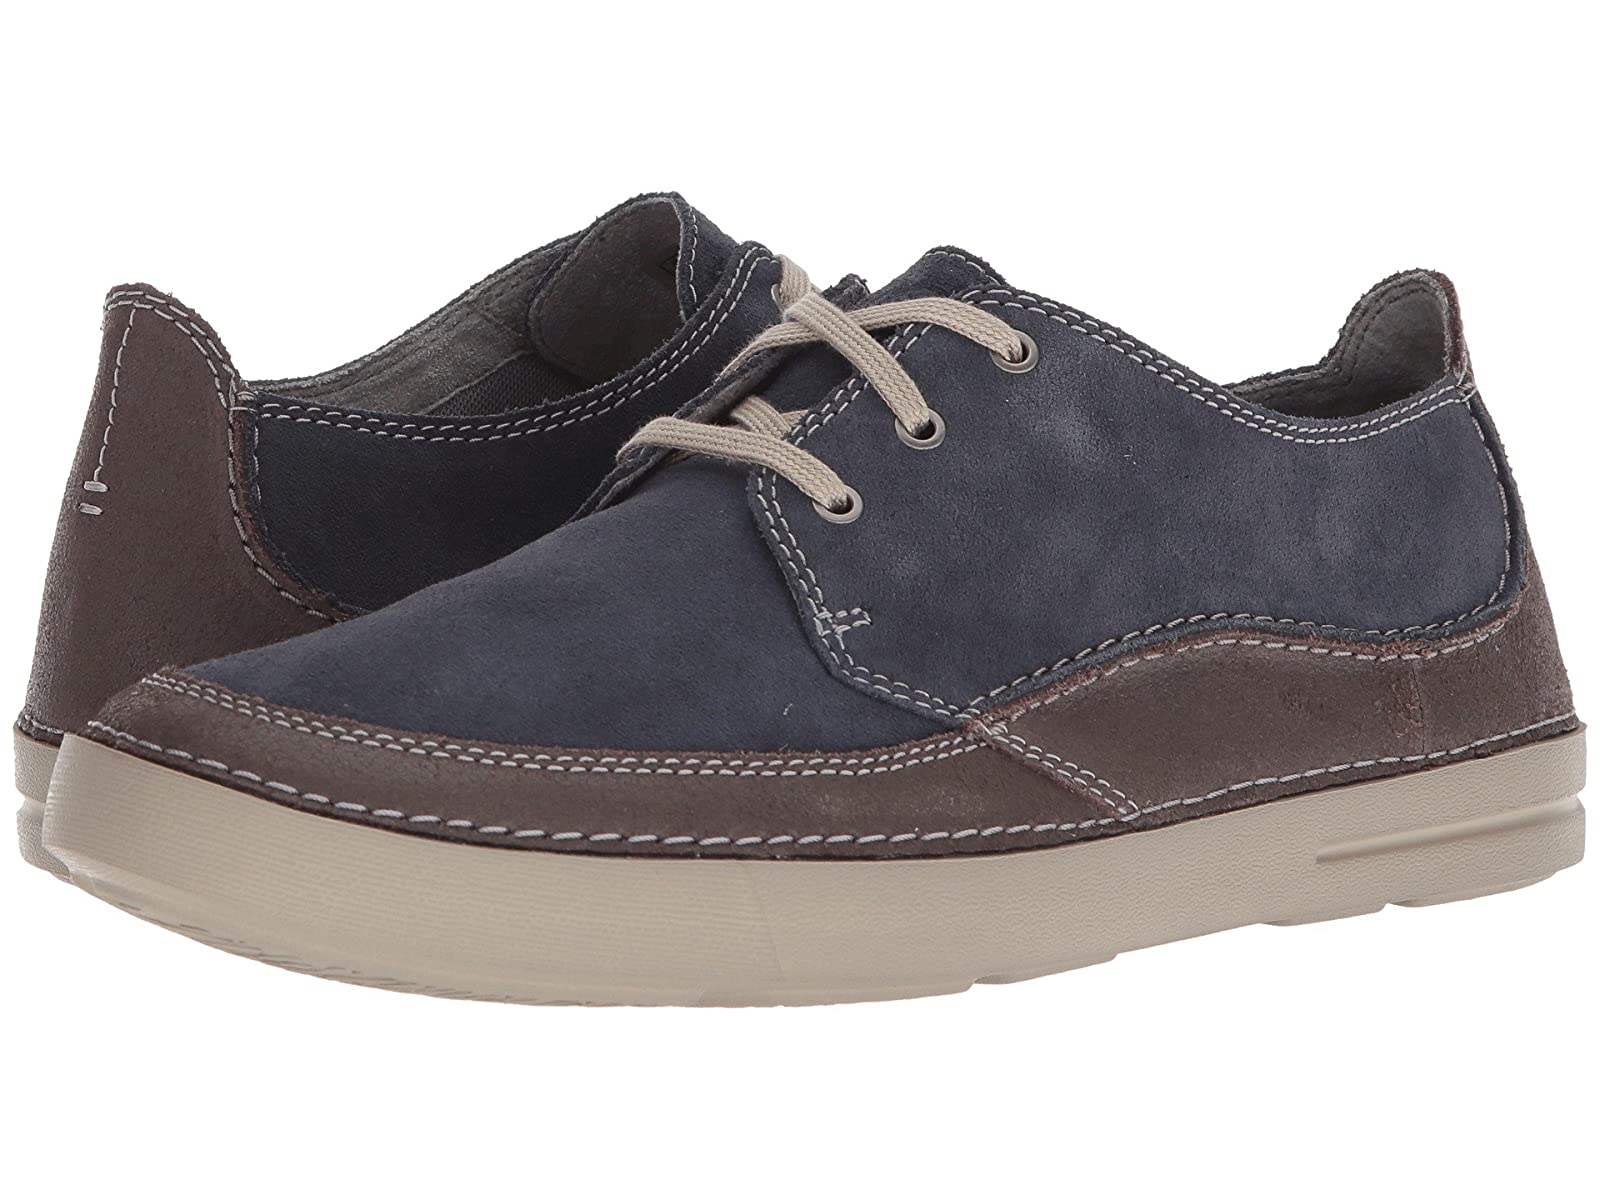 Clarks Gosler EdgeCheap and distinctive eye-catching shoes